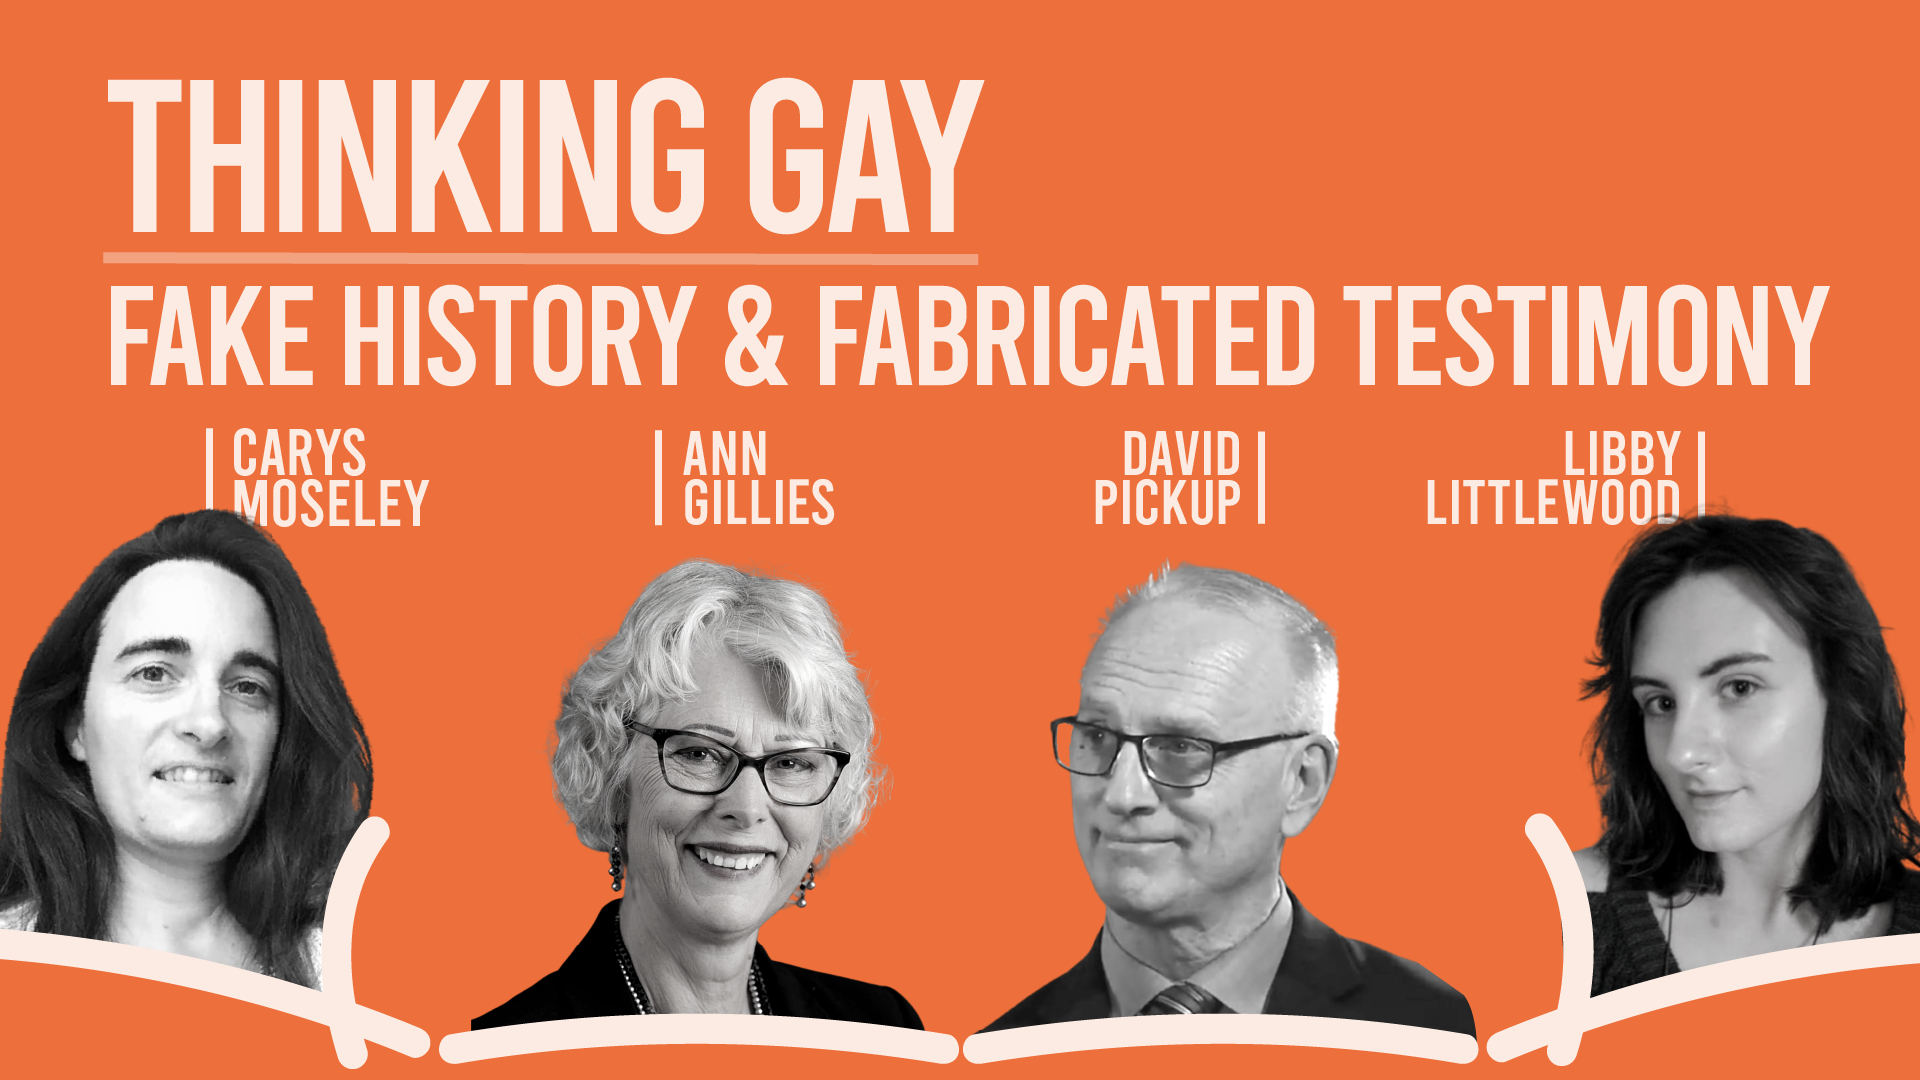 Thinking Gay | IFTCC Live  |   Series 2 Episode 2 |  Fake History and Fabricated Testimony